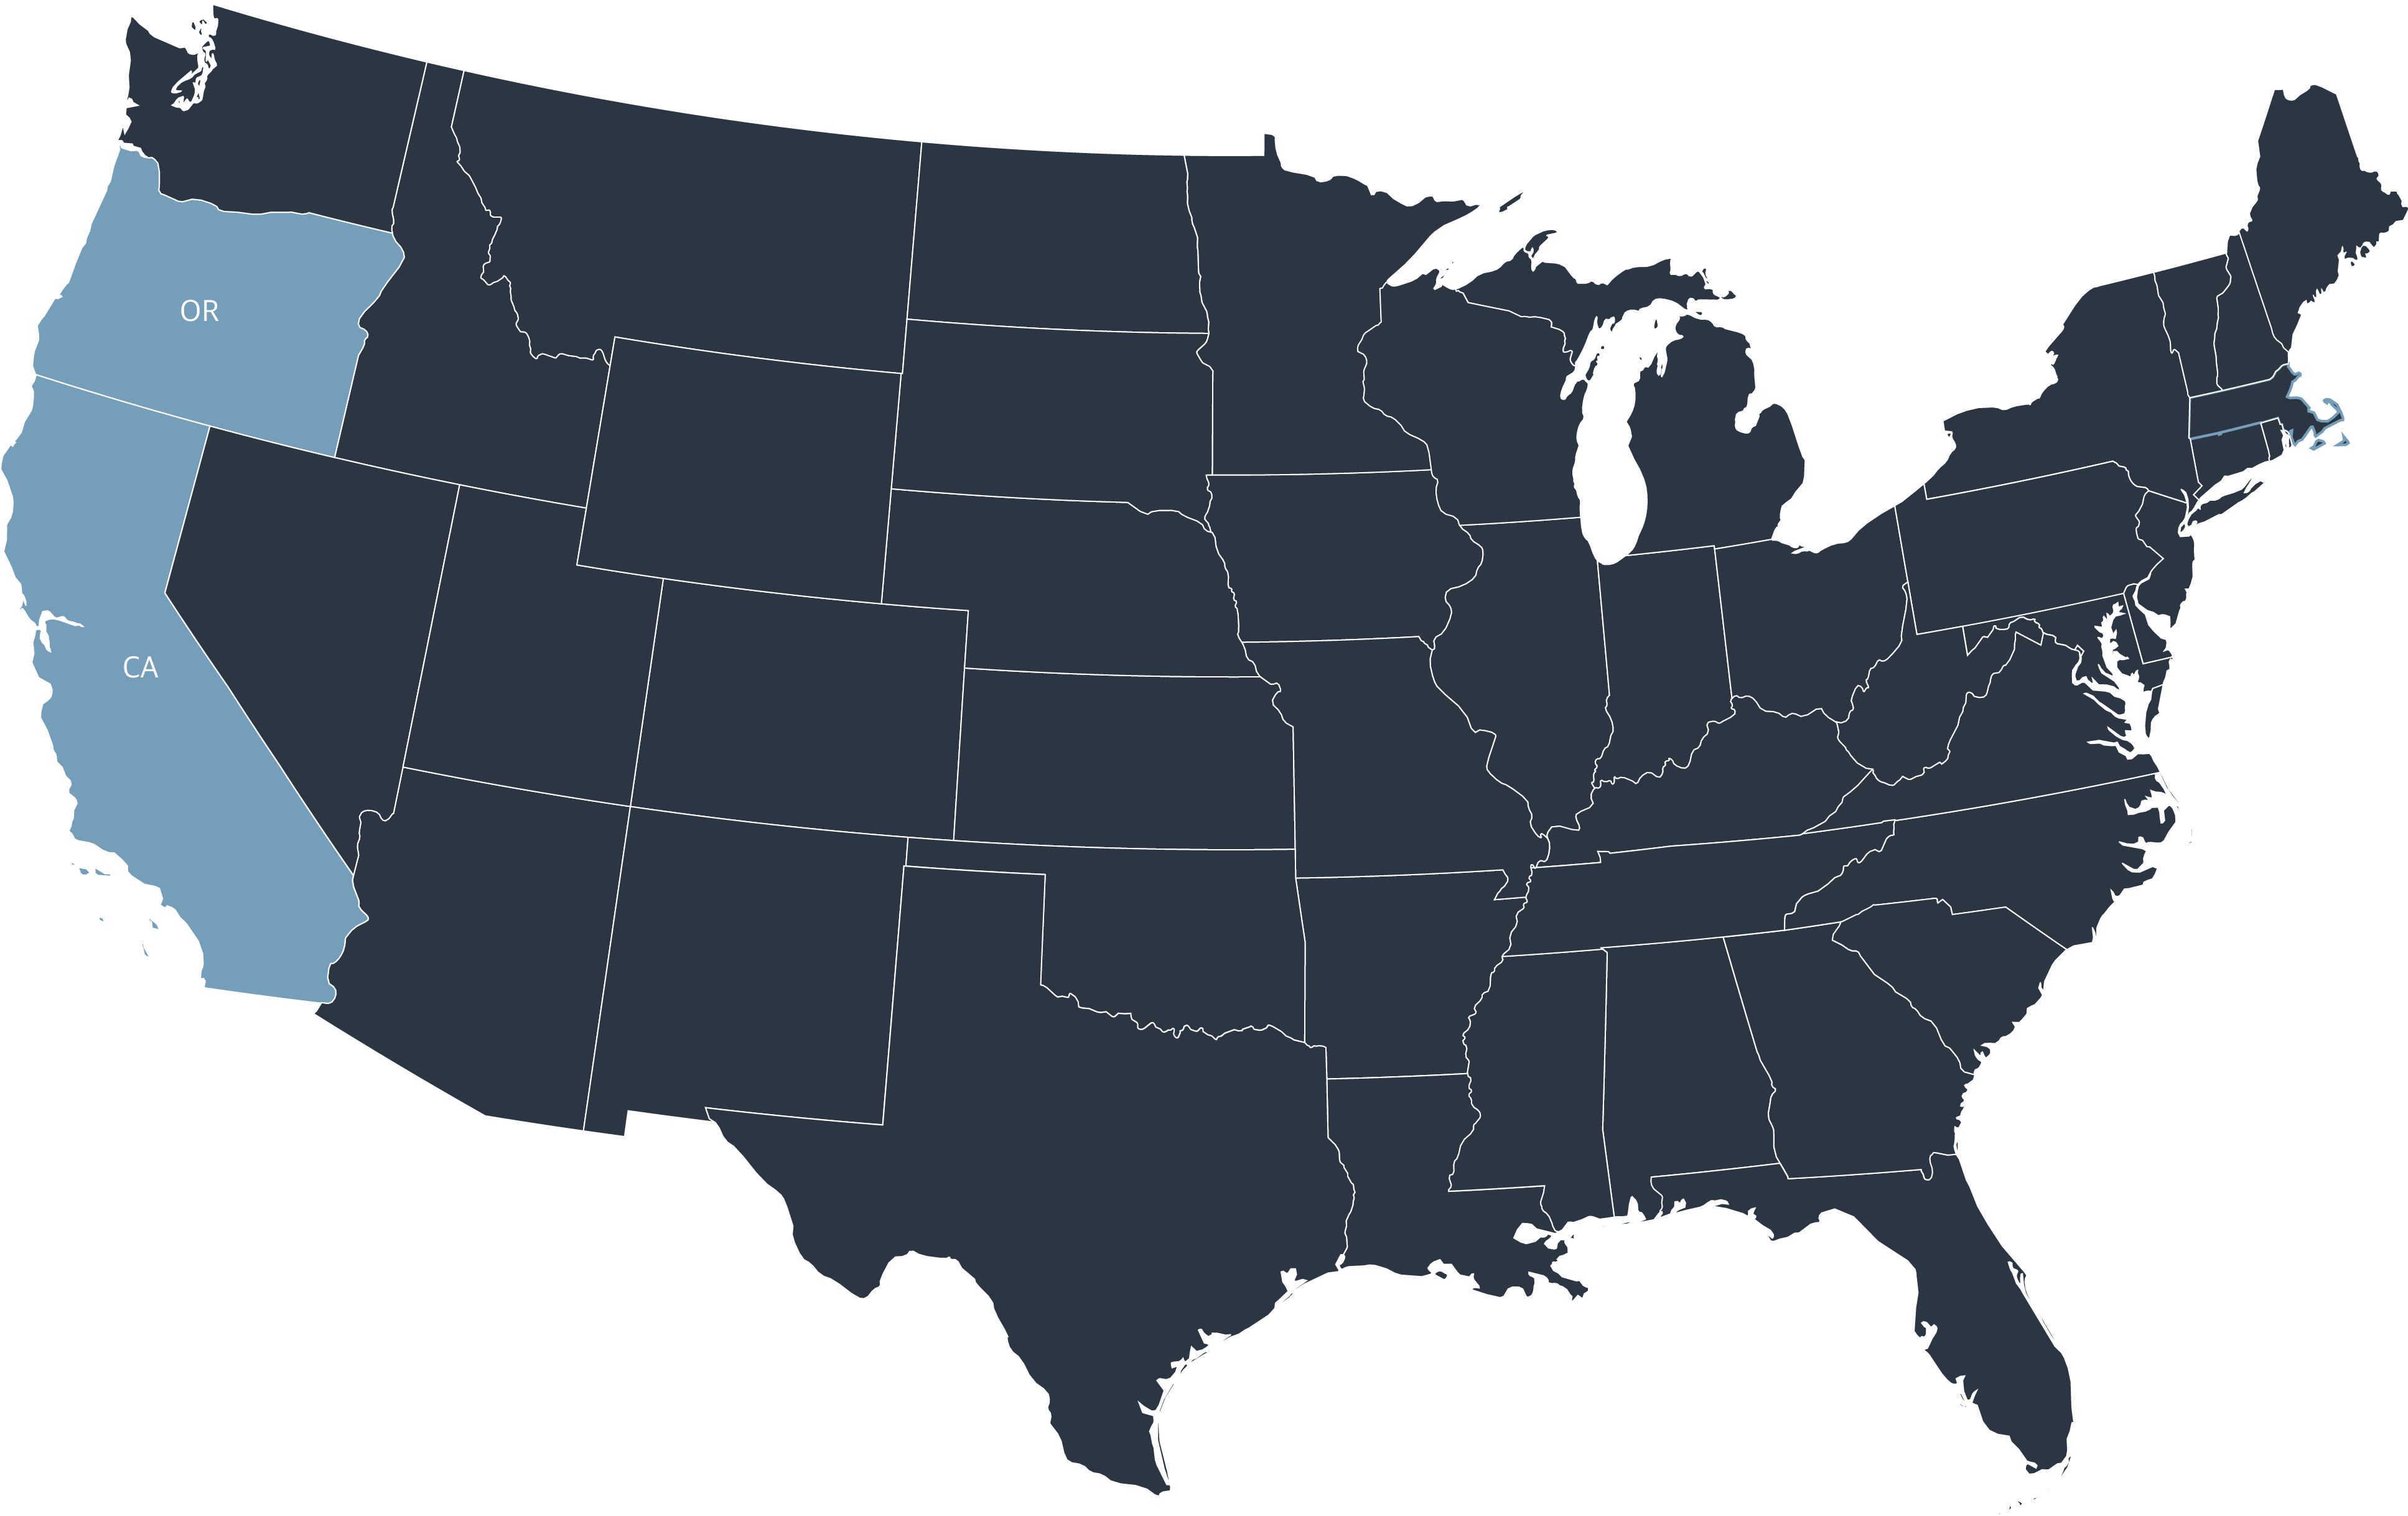 Map of the USA showing LCFS states